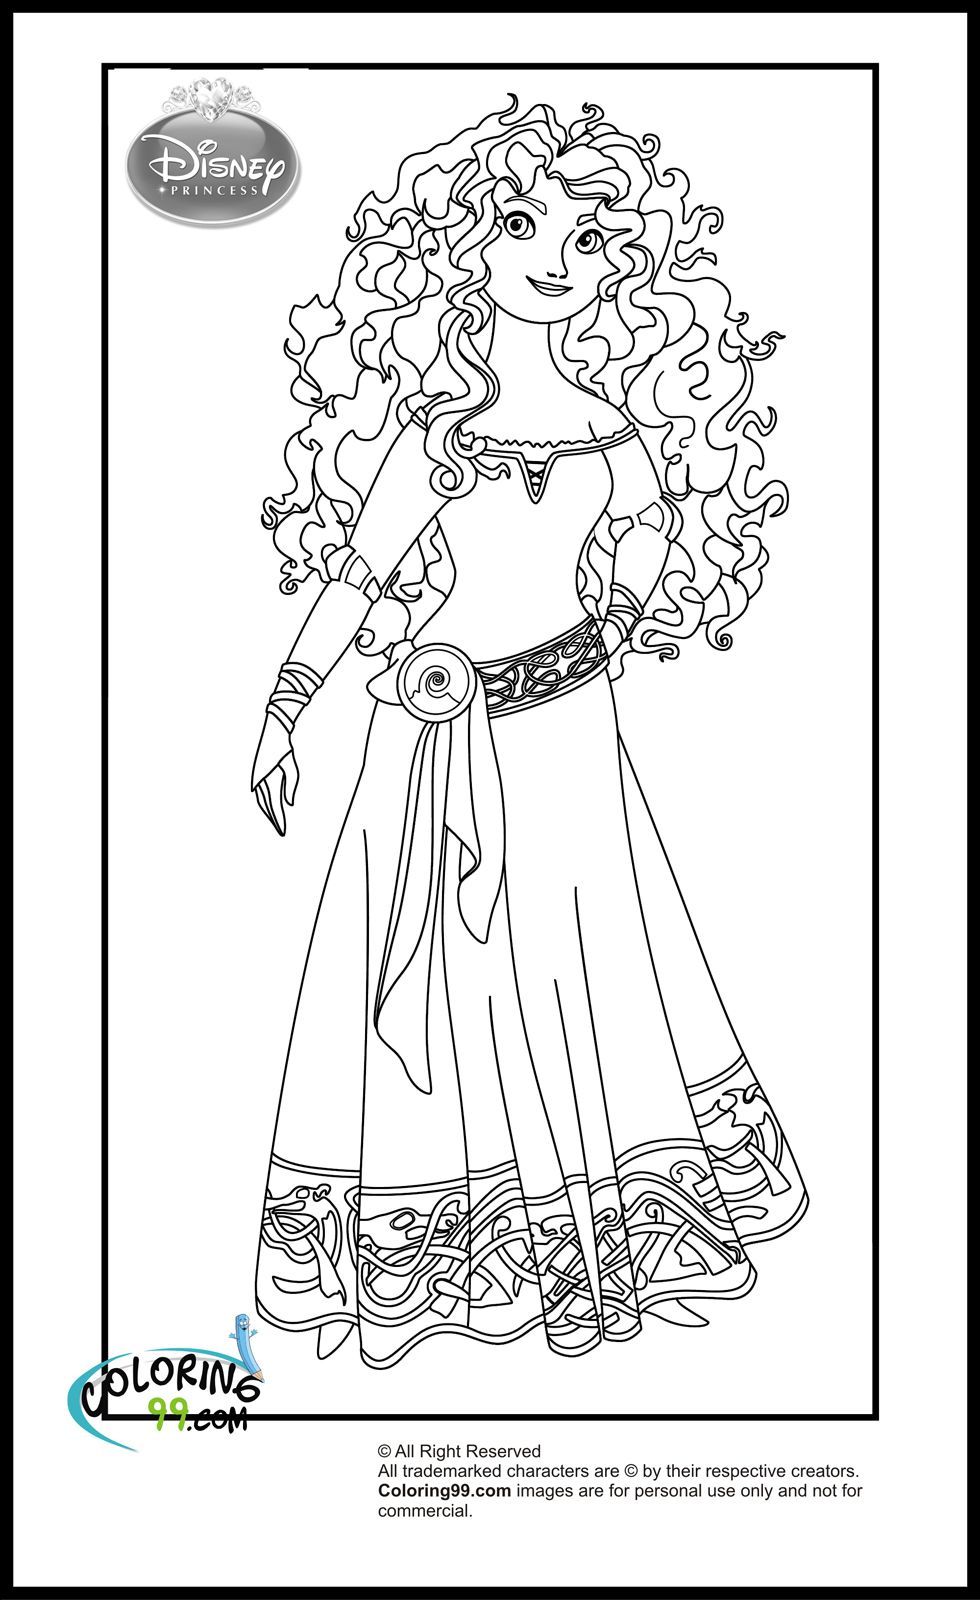 Fans Request Disney Princess With Merida From Brave Coloring Pages Minister C Disney Princess Coloring Pages Princess Coloring Pages Disney Princess Colors